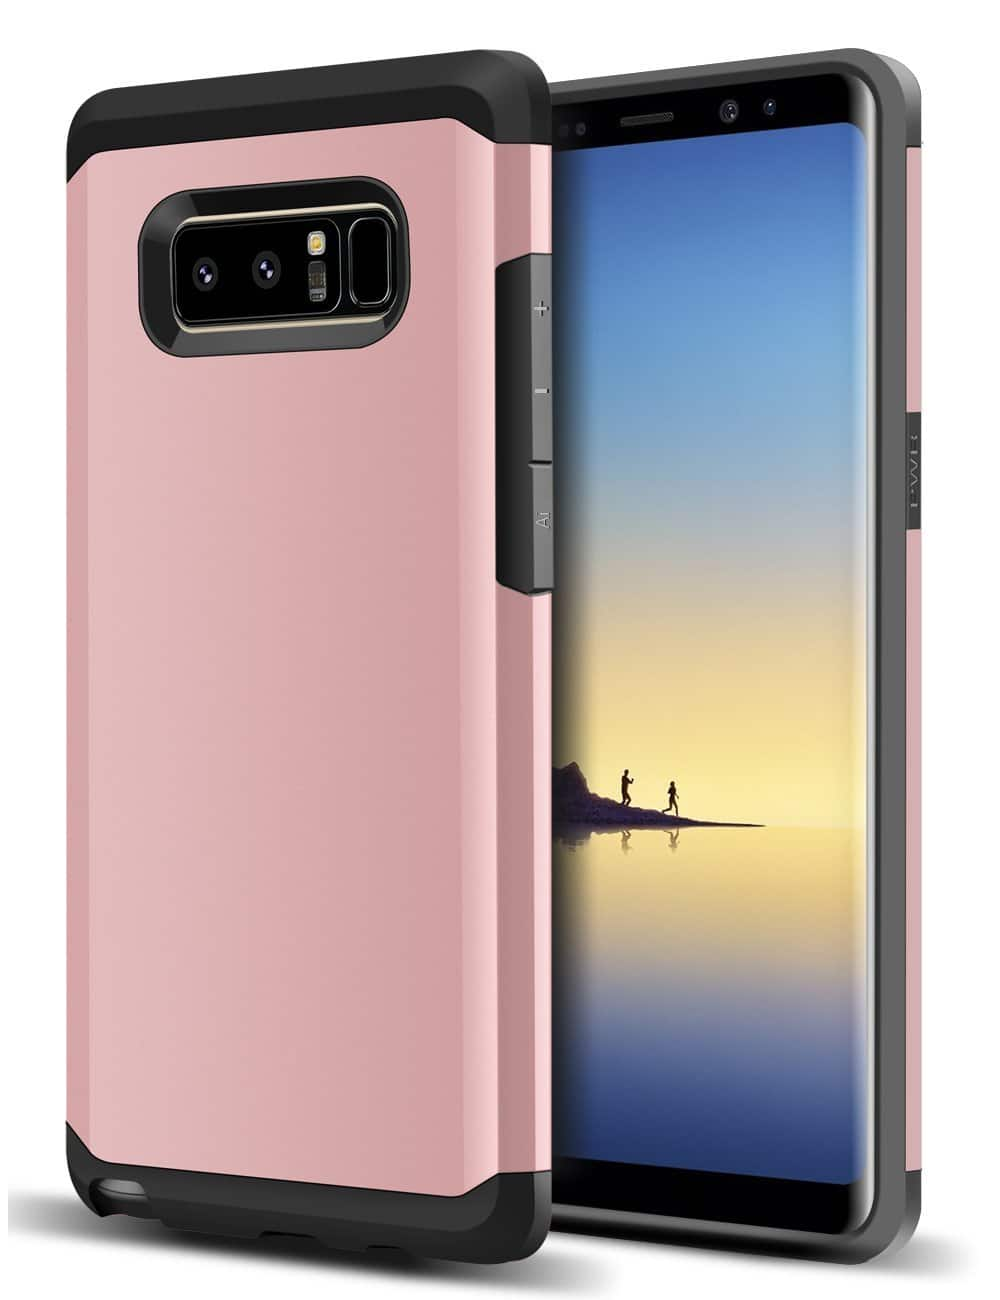 Eloven via Amazon has select heavy duty armor cases on sale up to 60% off with Prime Member free s/h.  Samsung Note 8 ($6.75) iPhone X($6.75) iPhone 5S/5/SE ($2.36)